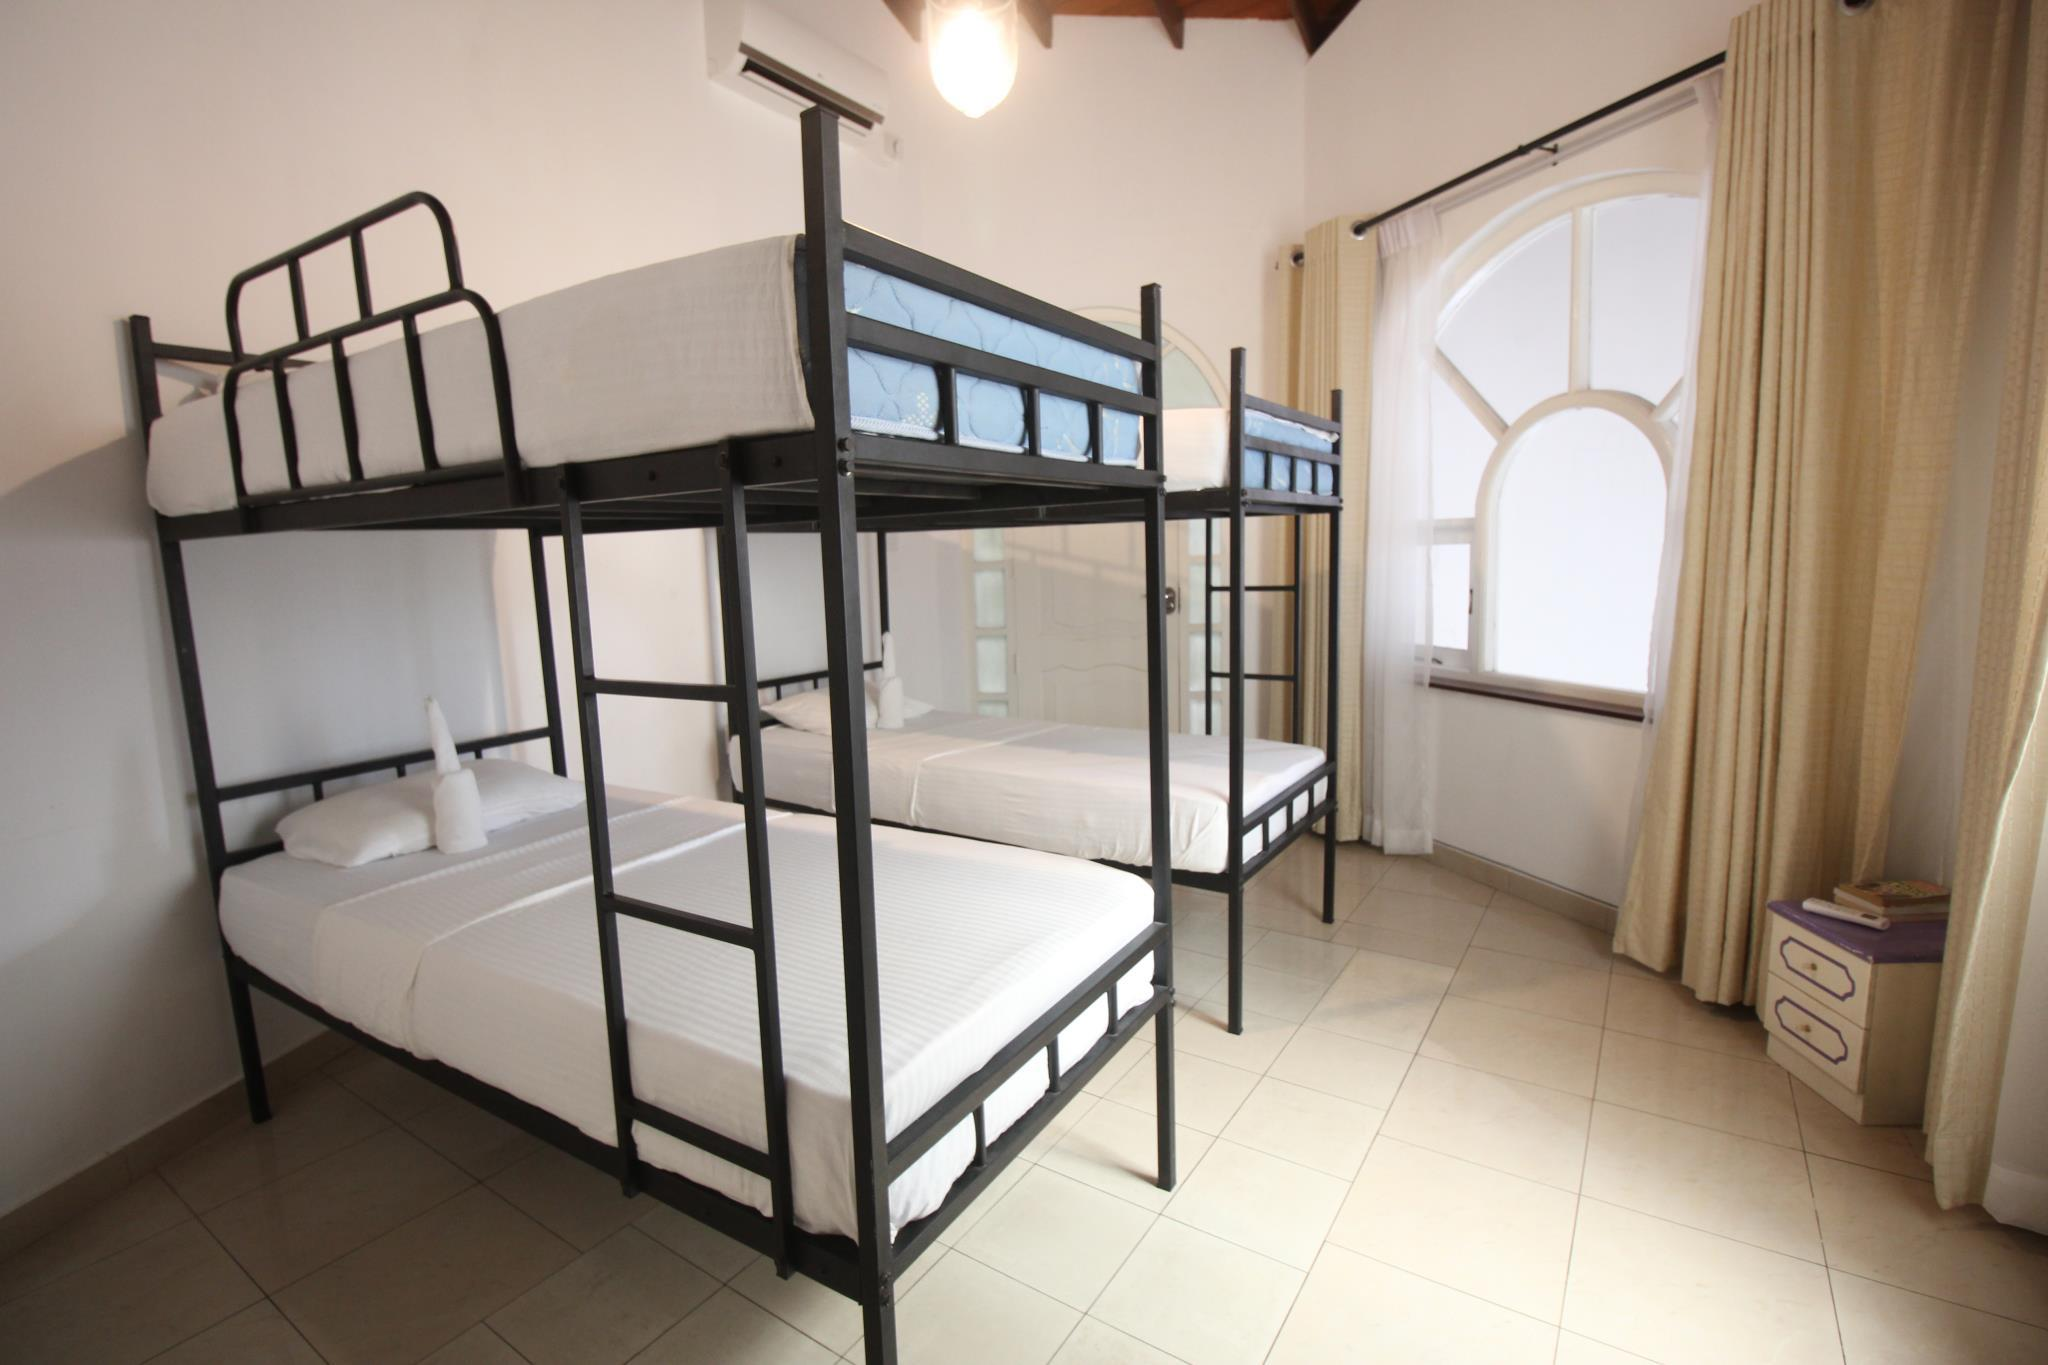 Camera con 6 Posti Letto (6 Beds Room)